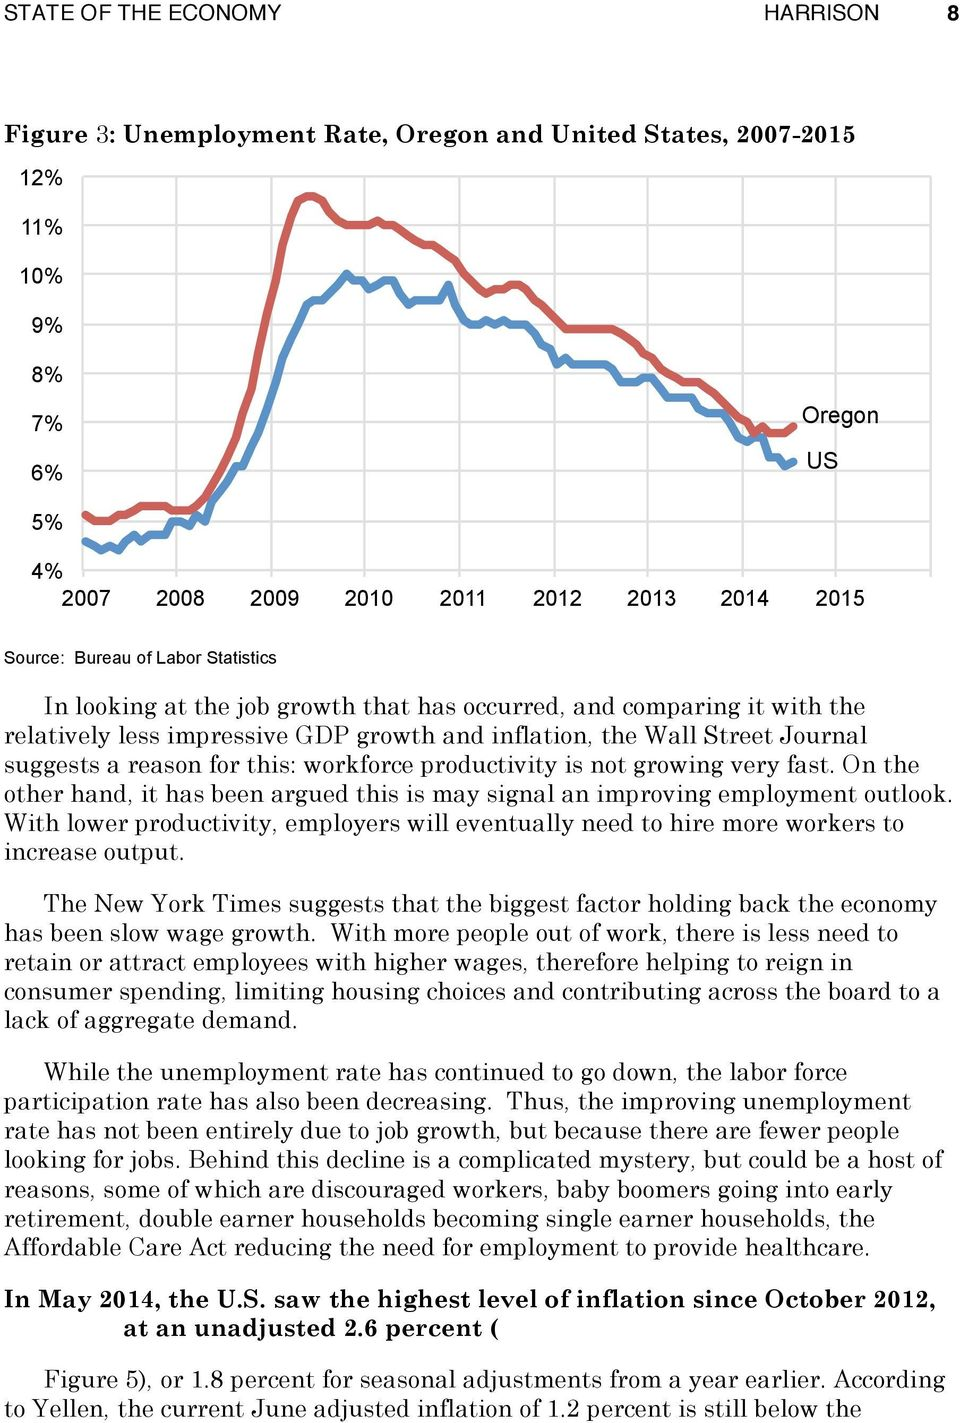 fast. On the other hand, it has been argued this is may signal an improving employment outlook. With lower productivity, employers will eventually need to hire more workers to increase output.